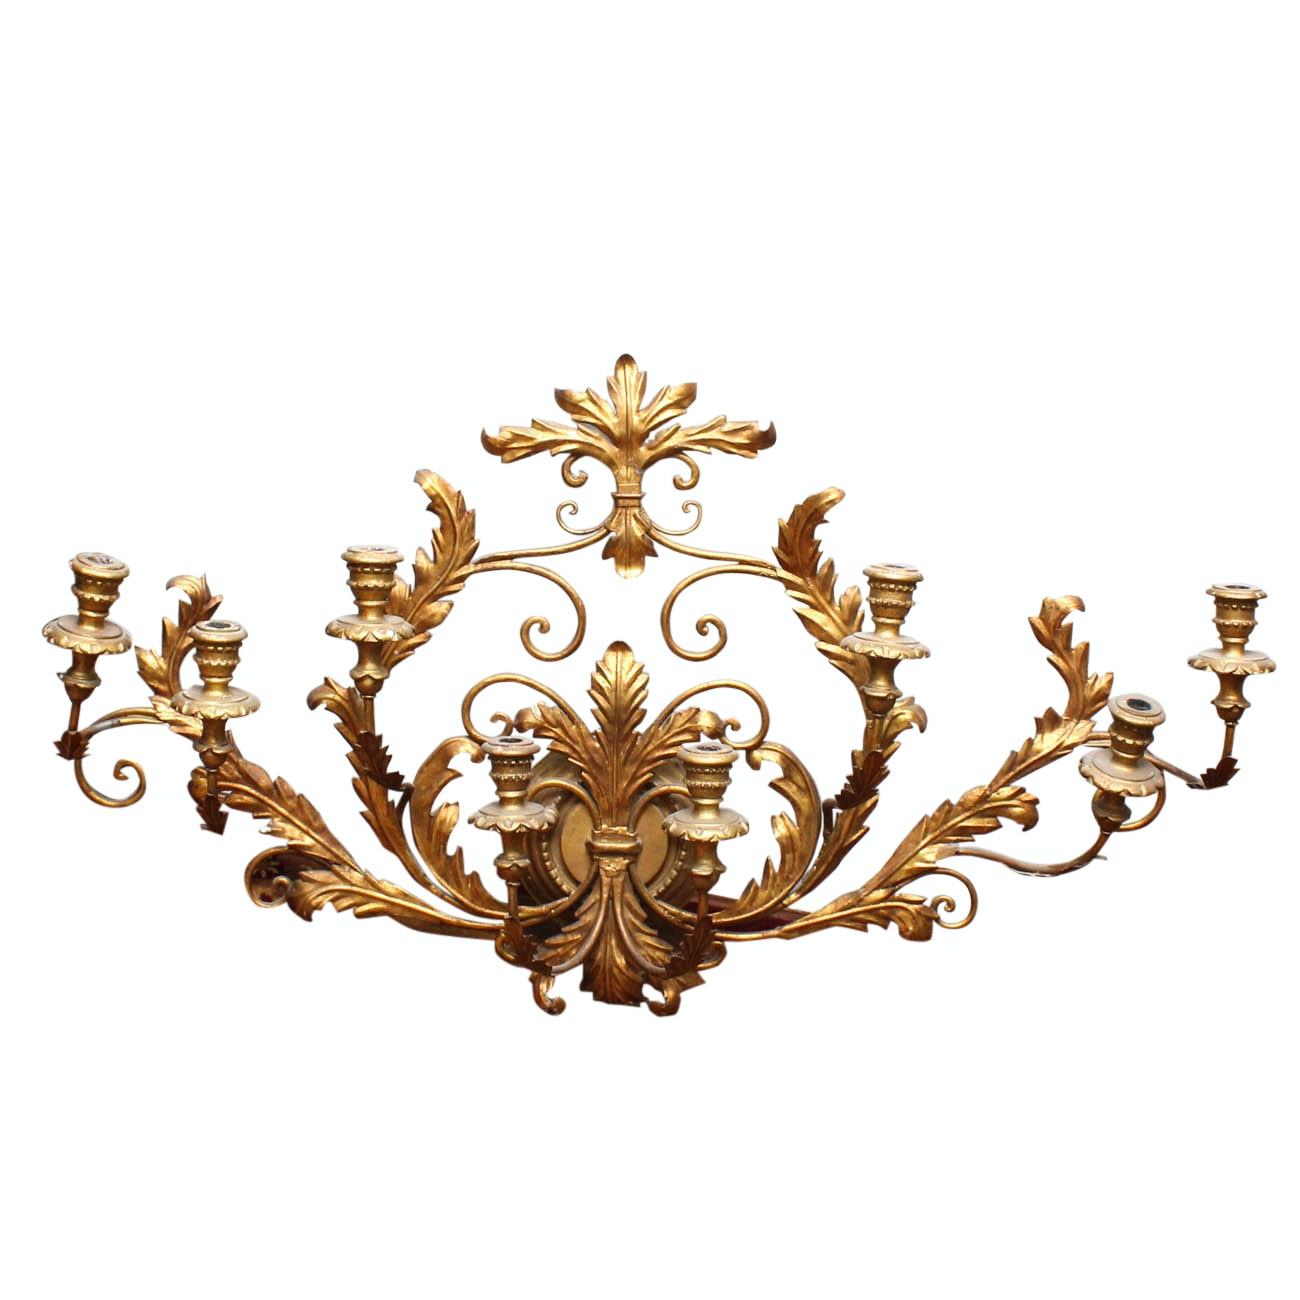 Brass and Wood Foliate Wall Sconce